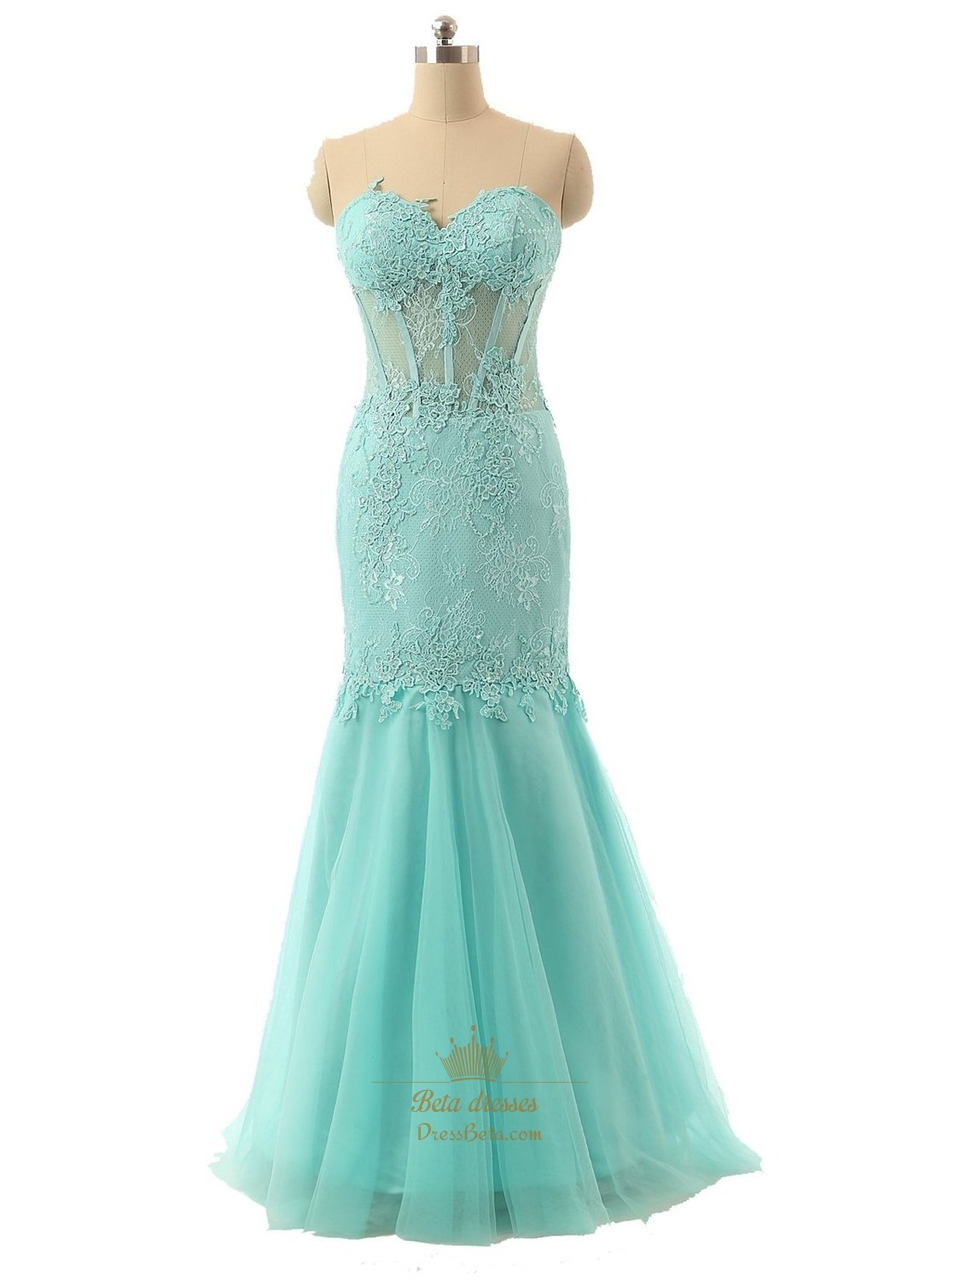 c6b3ce4bf4 Tiffany Blue Strapless Lace Sweetheart Corset Bodice Tulle Mermaid Prom  Dress SKU -P100